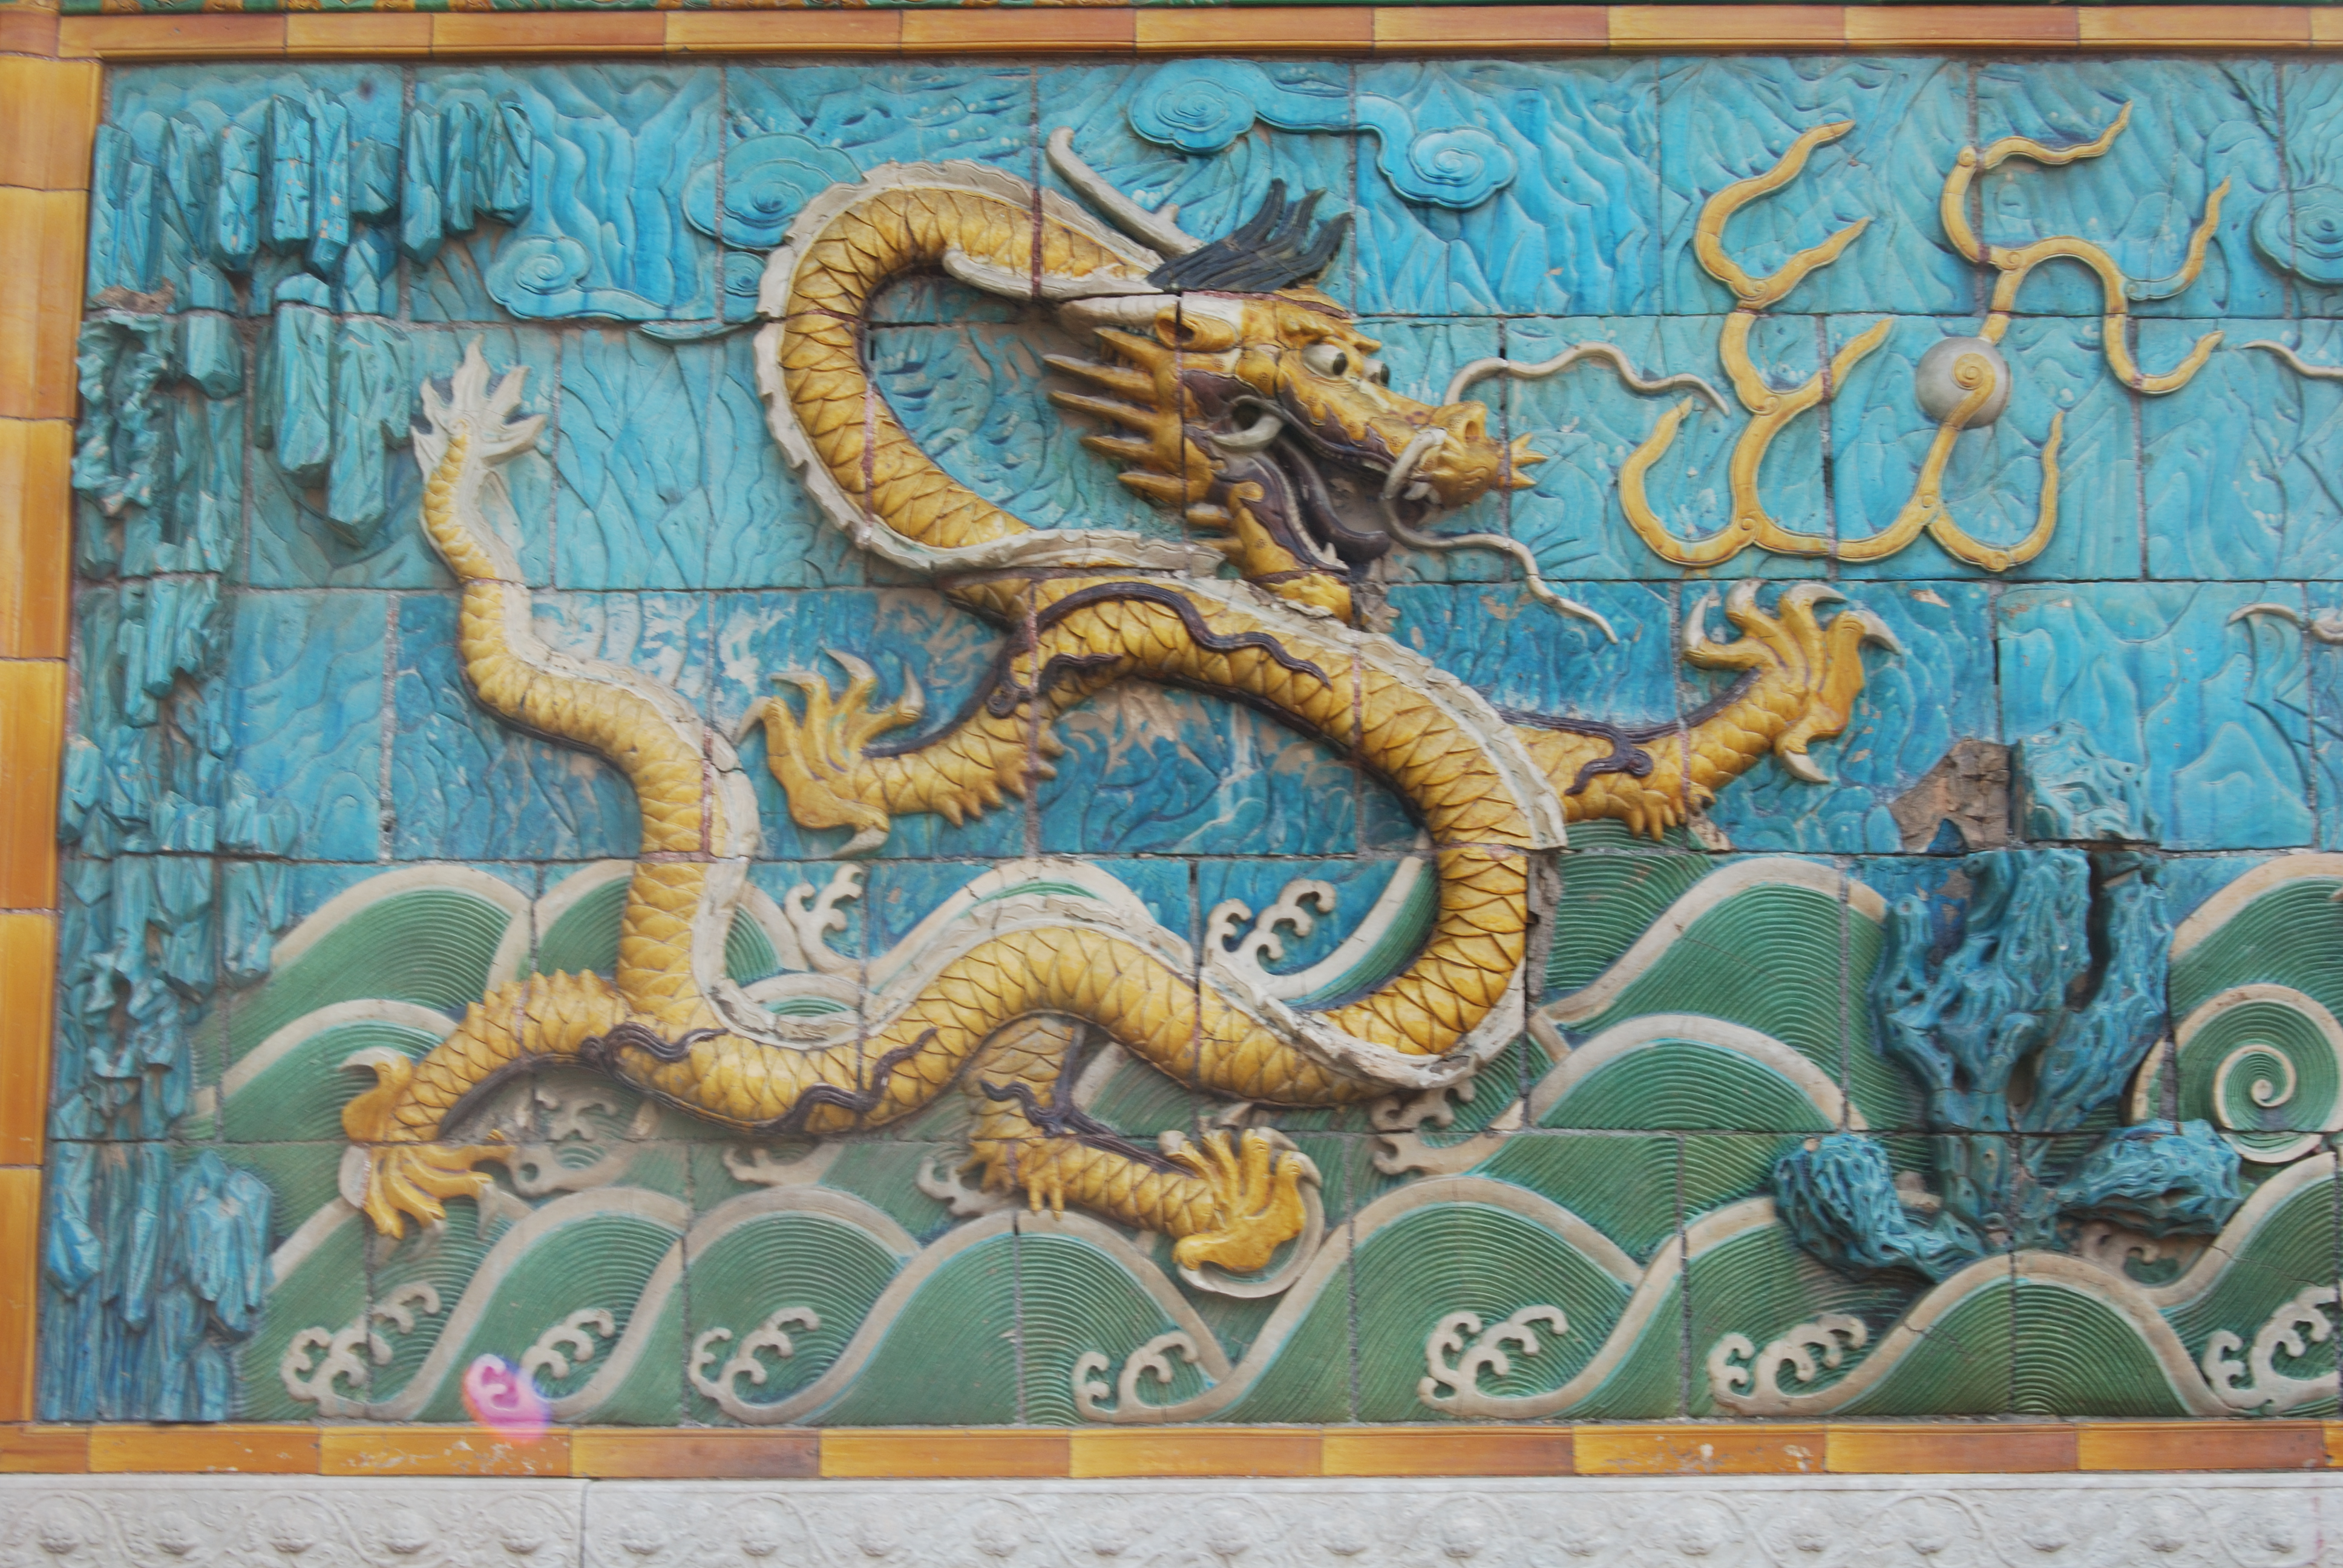 China Dragon: The Dragon's Ascent: Will China Displace Russia As Central